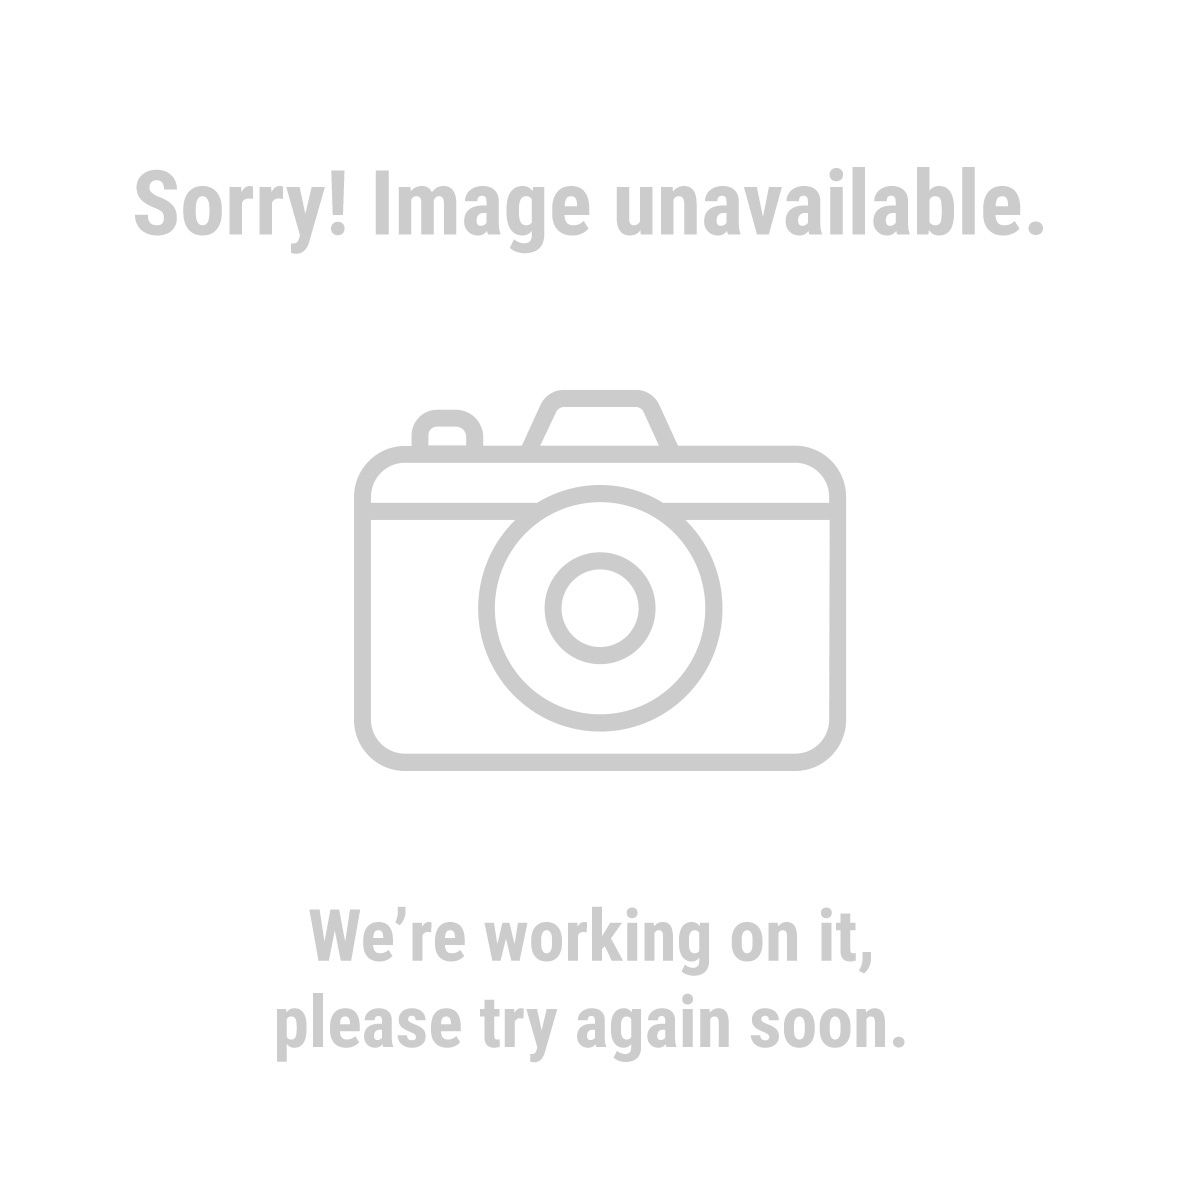 Admiral® 62737 7-1/4 in. 140T Plywood Circular Saw Blade